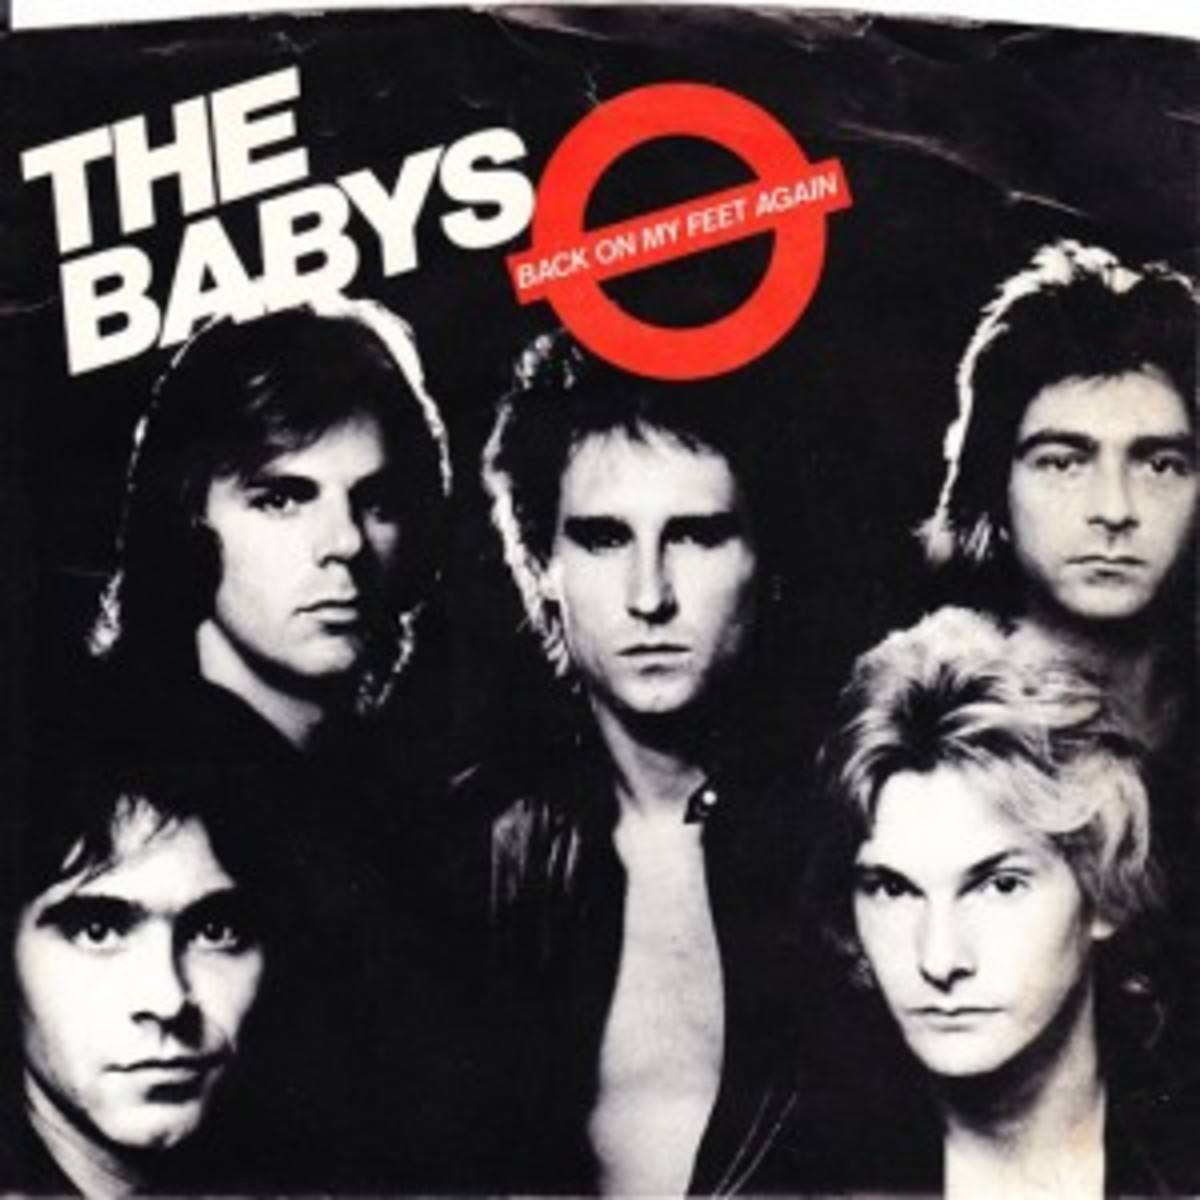 The Babys Back on My Feet Again picture sleeve